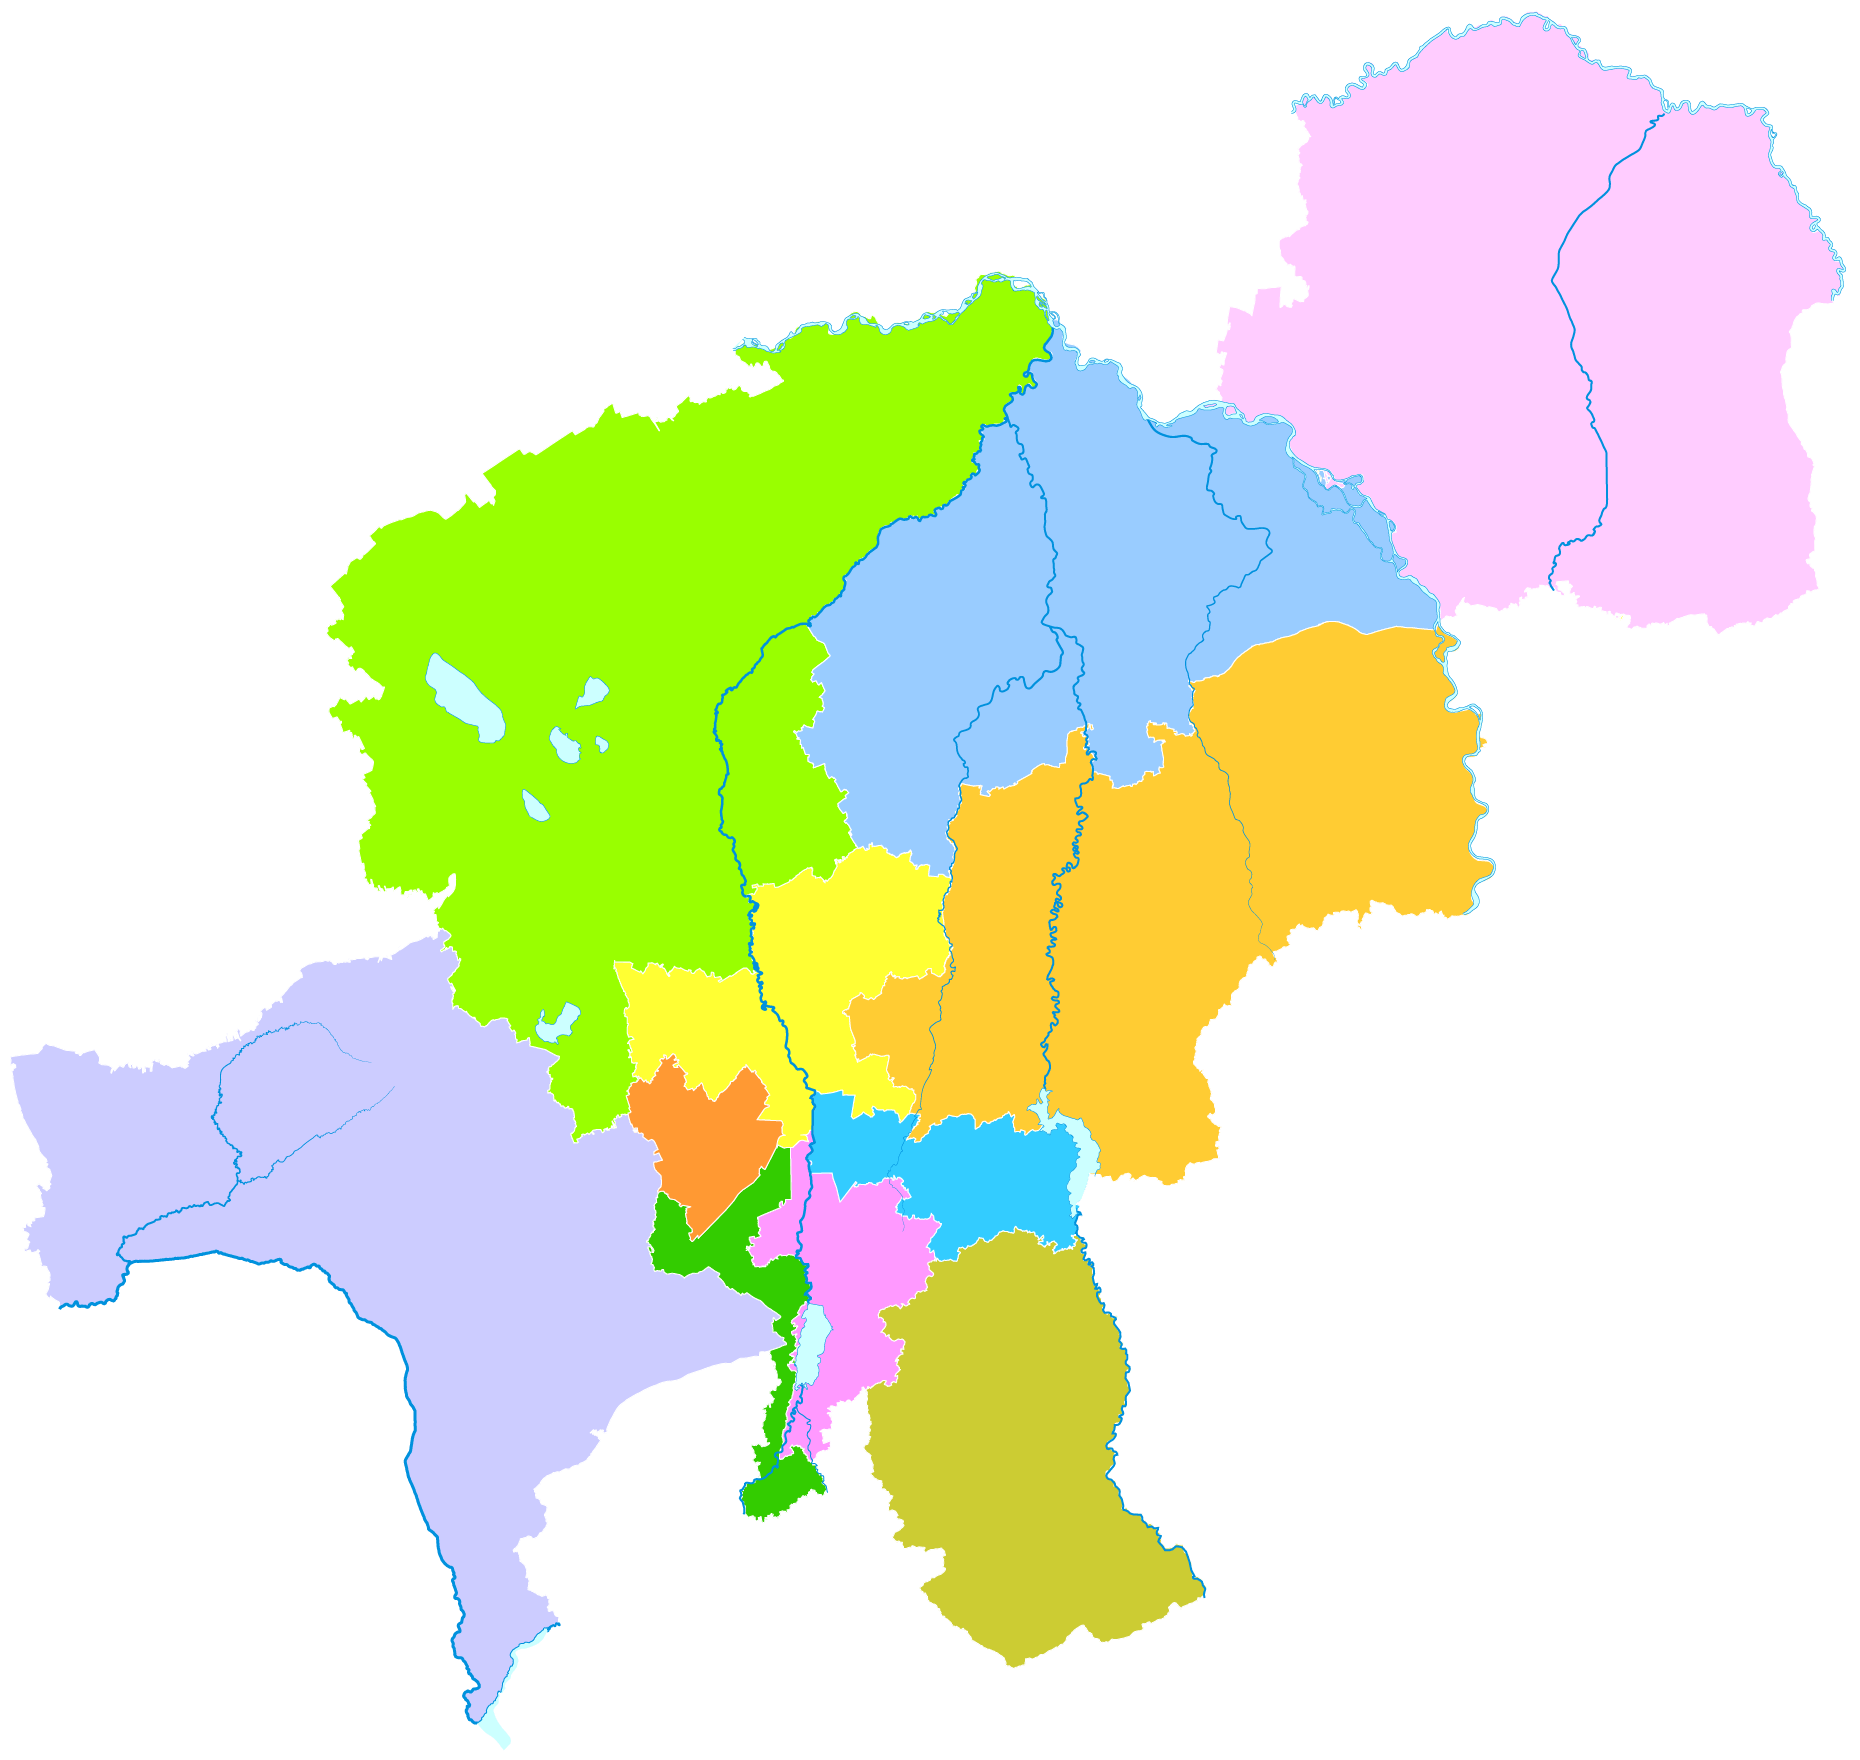 Changchun Png - File:Administrative Division Changchun.png - Wikimedia Commons